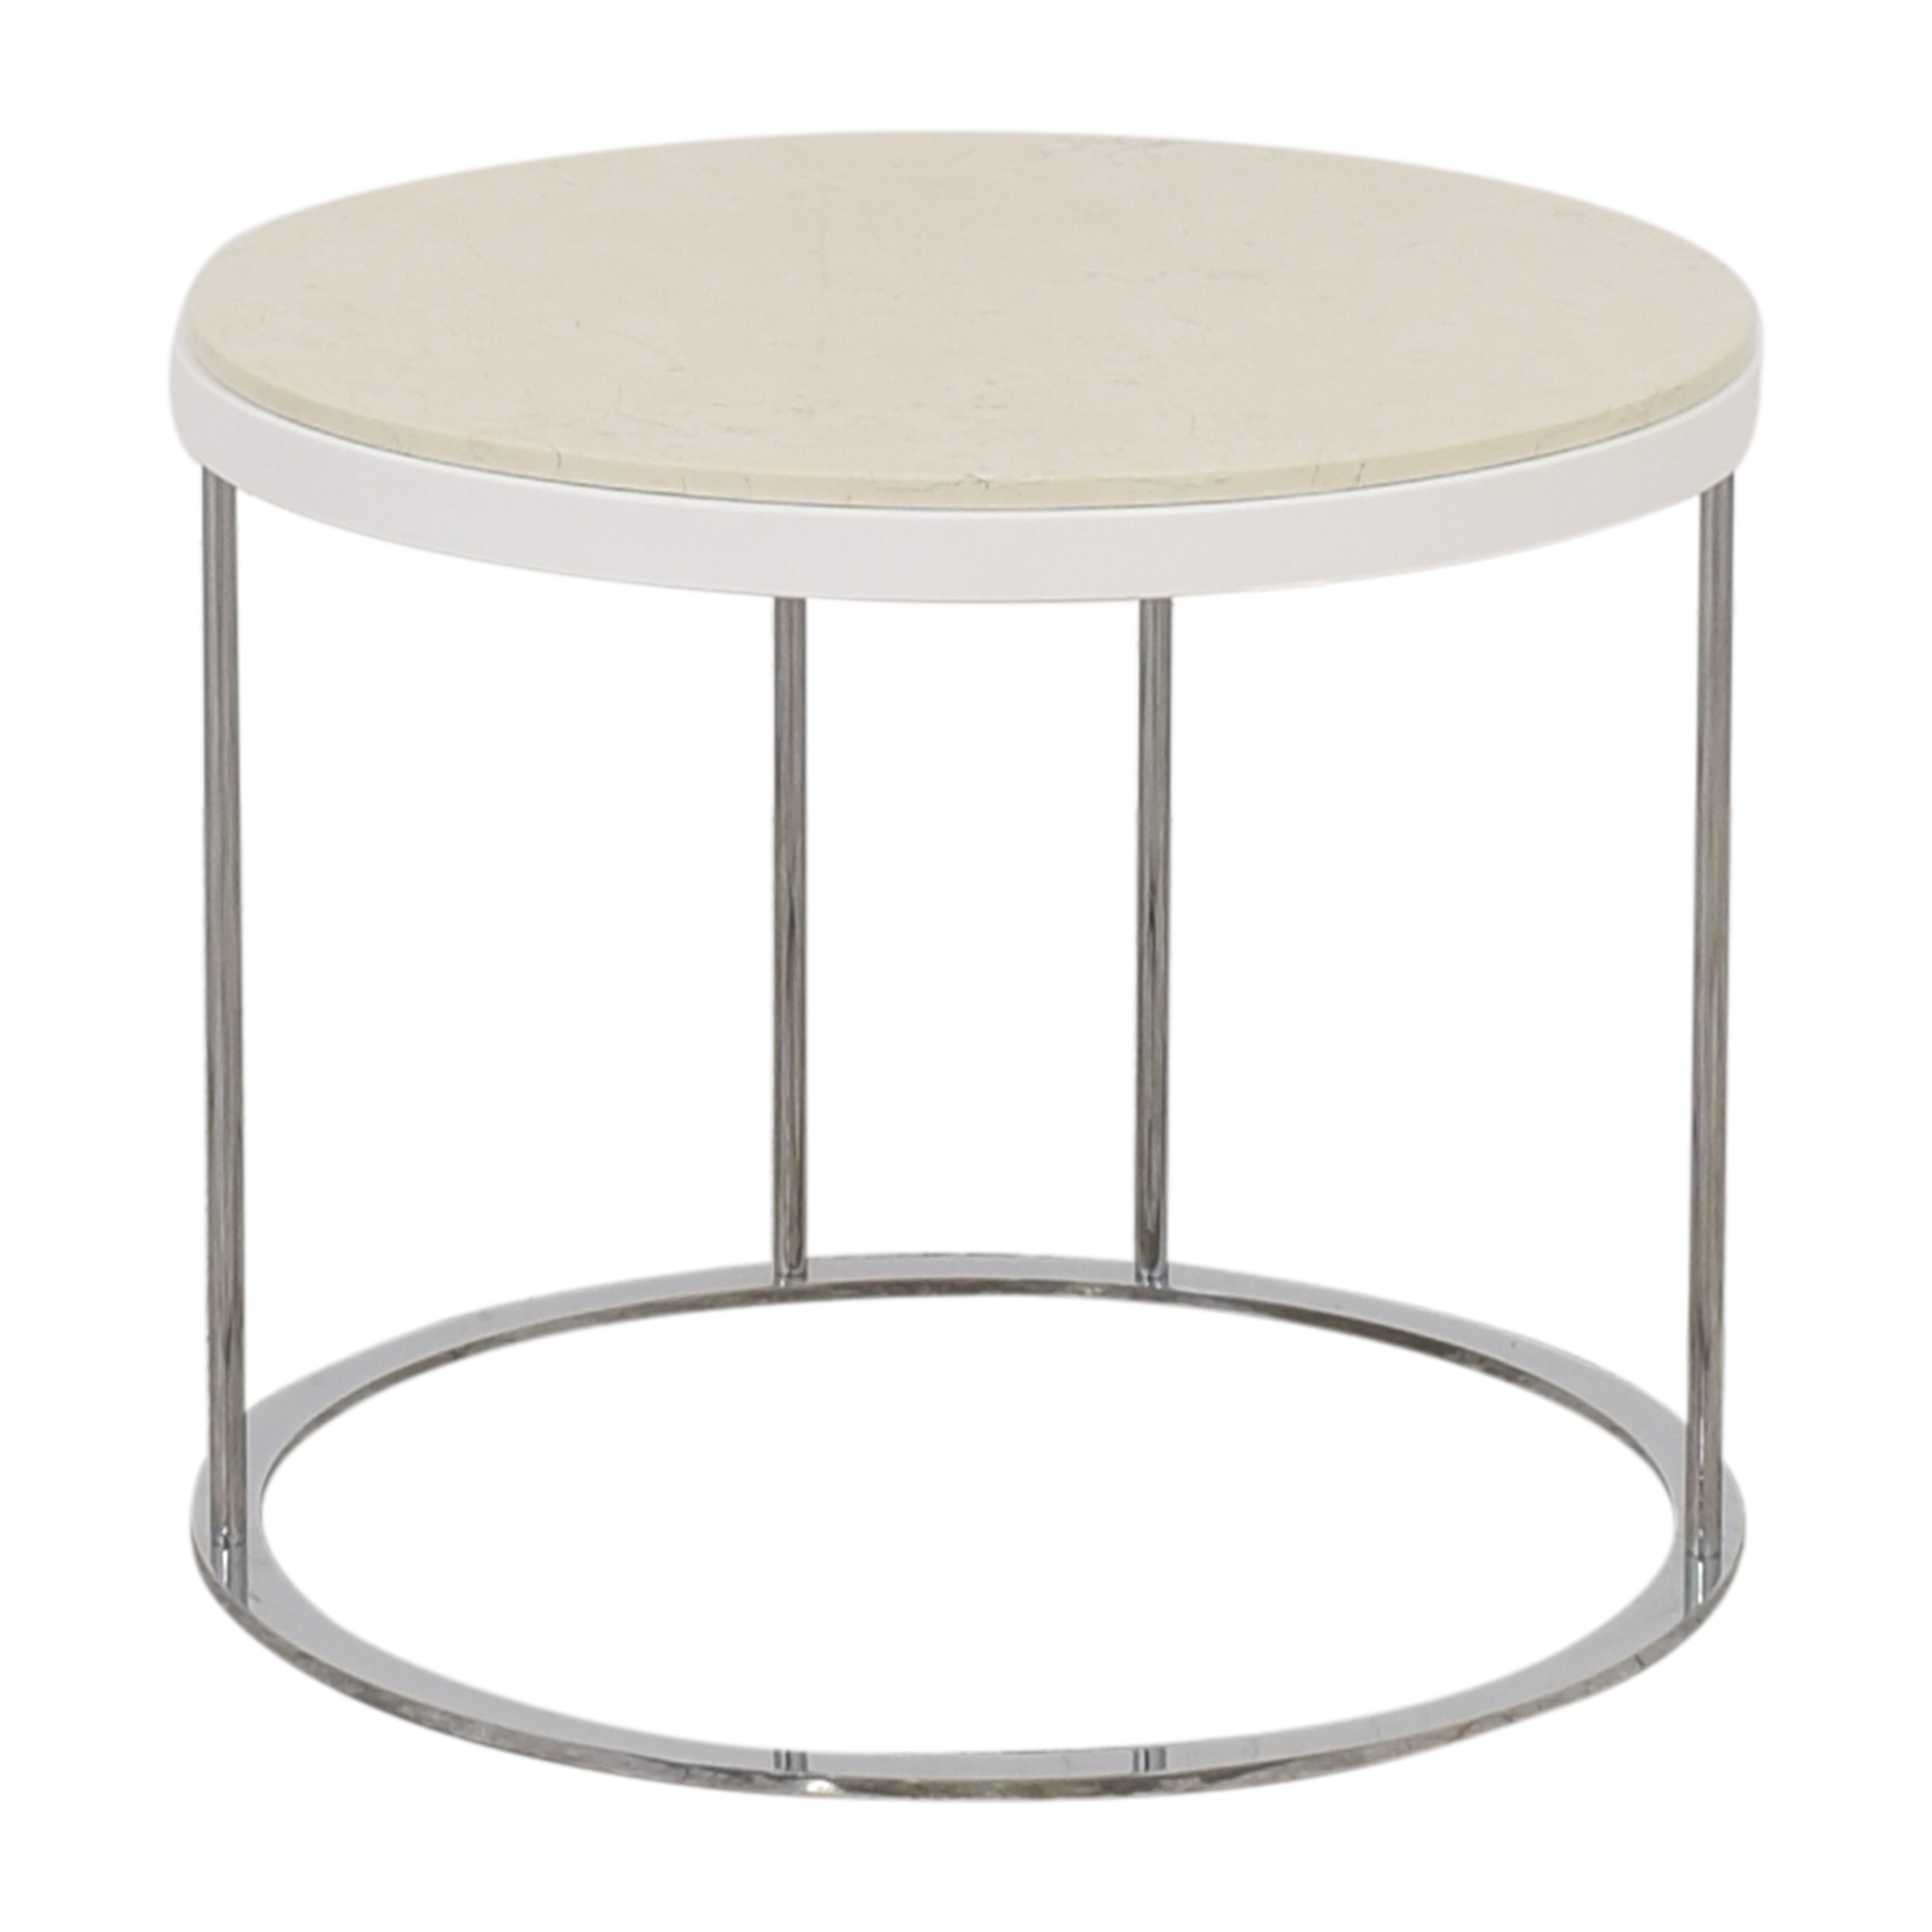 Koleksiyon Perrino End Table / End Tables